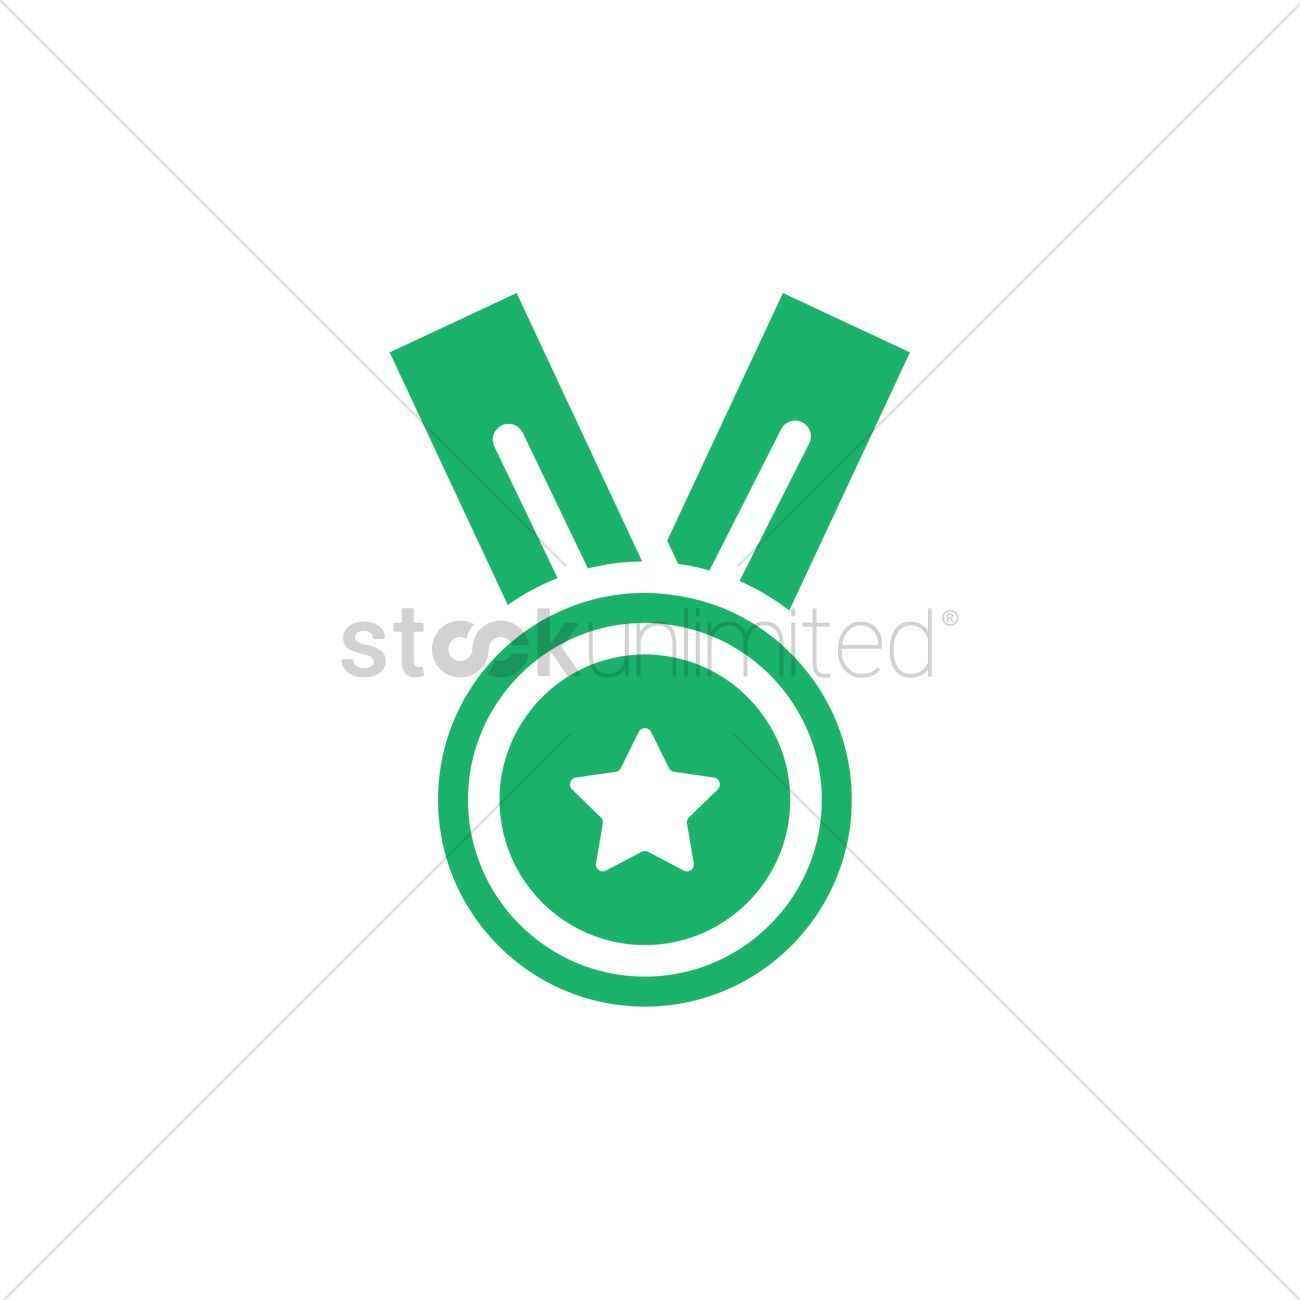 Medal vectors stock clipart